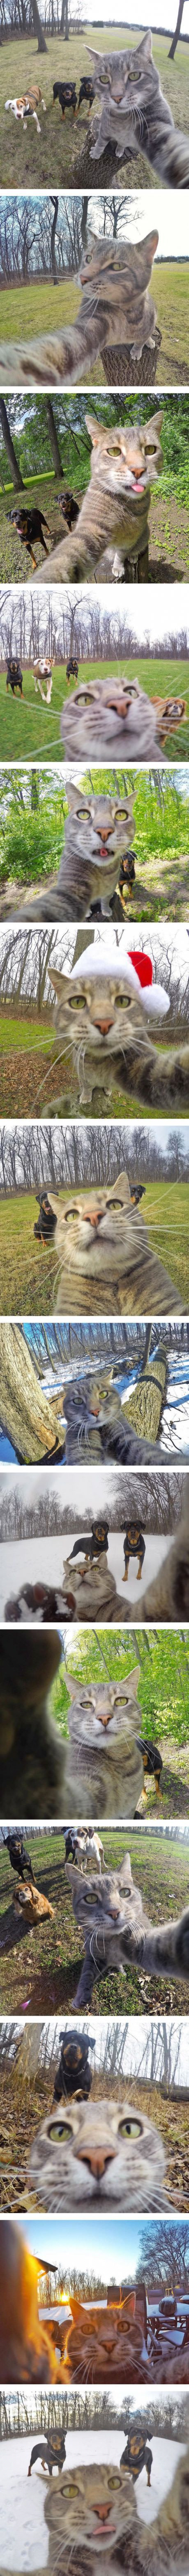 Cat selfie taker